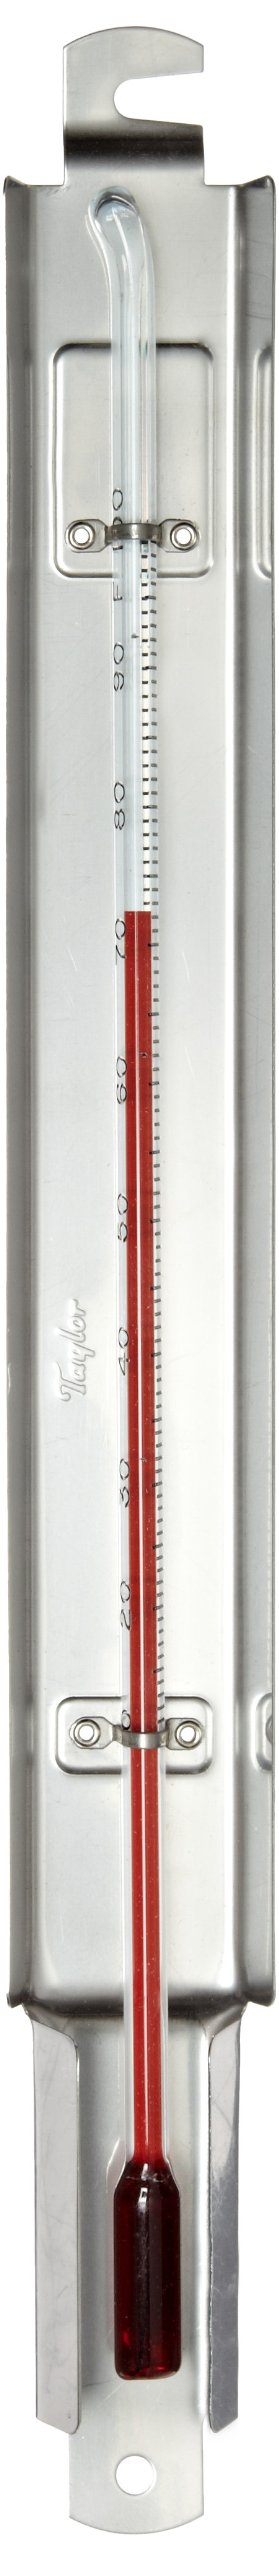 Taylor Precision 5499J Orchard Thermometer (10° to 100°F Temperature Range in 1° Increments) by Taylor Precision Products